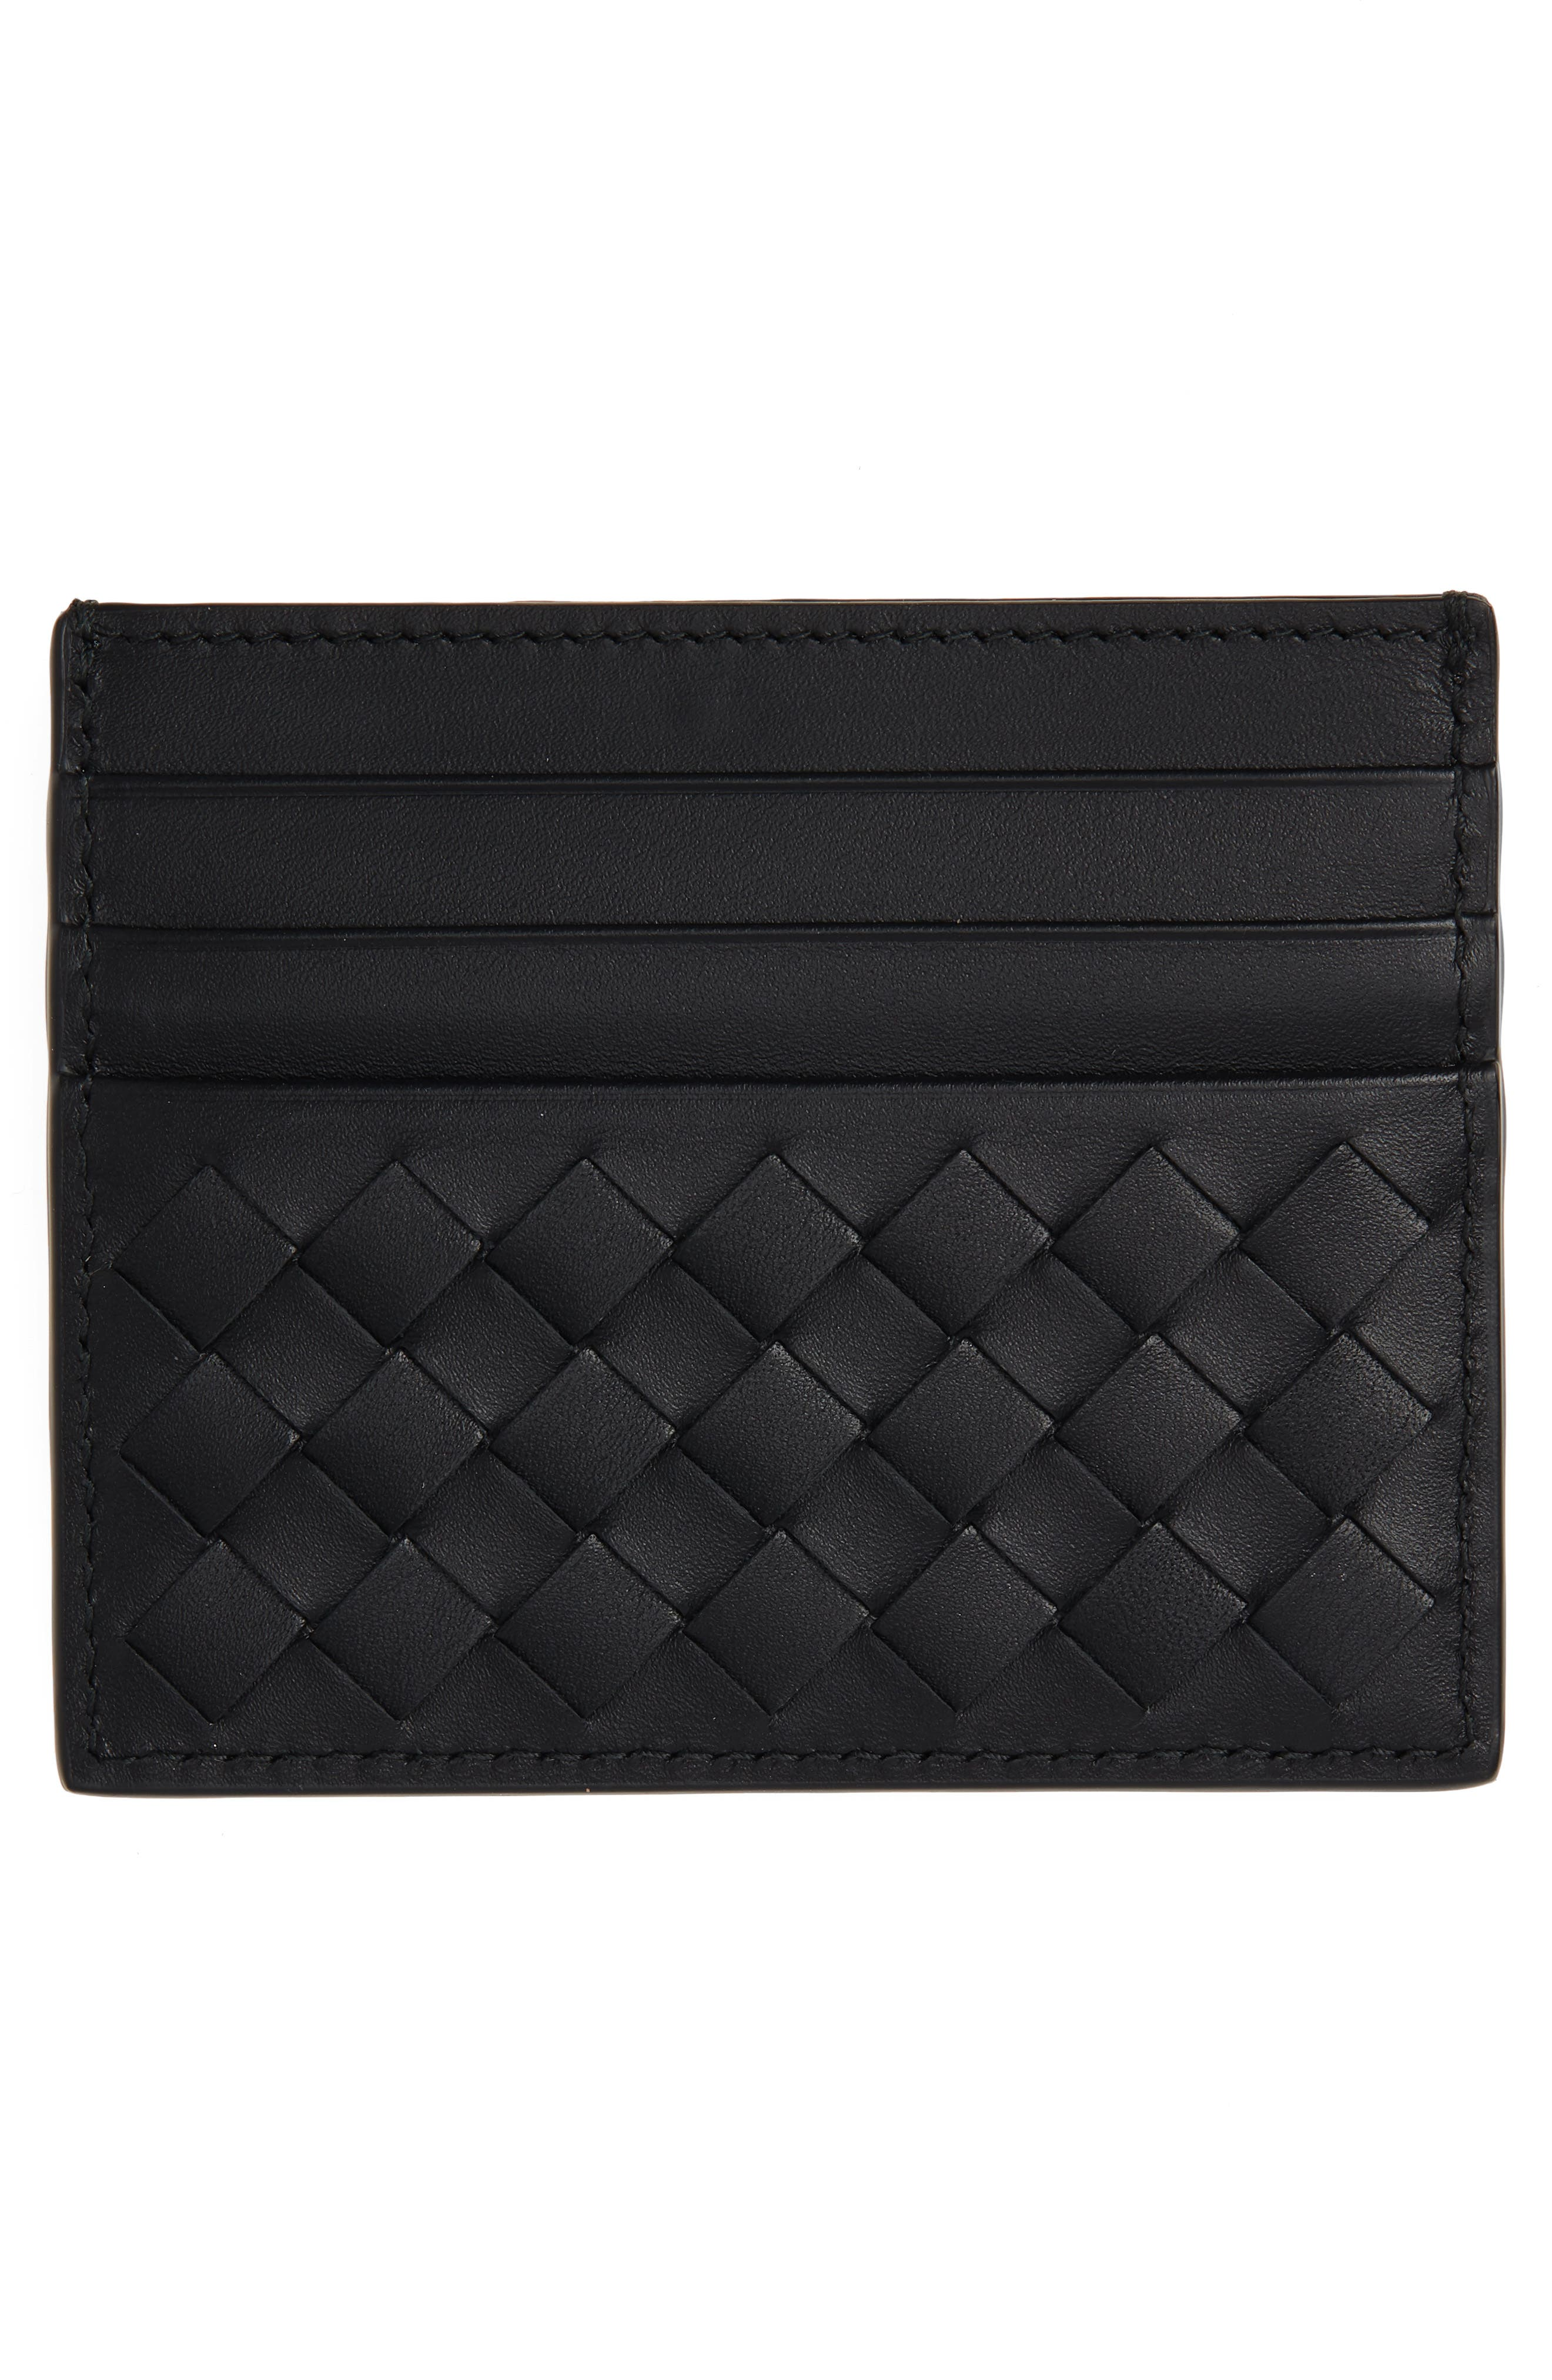 Woven Leather Card Case,                             Alternate thumbnail 2, color,                             1000 BLACK